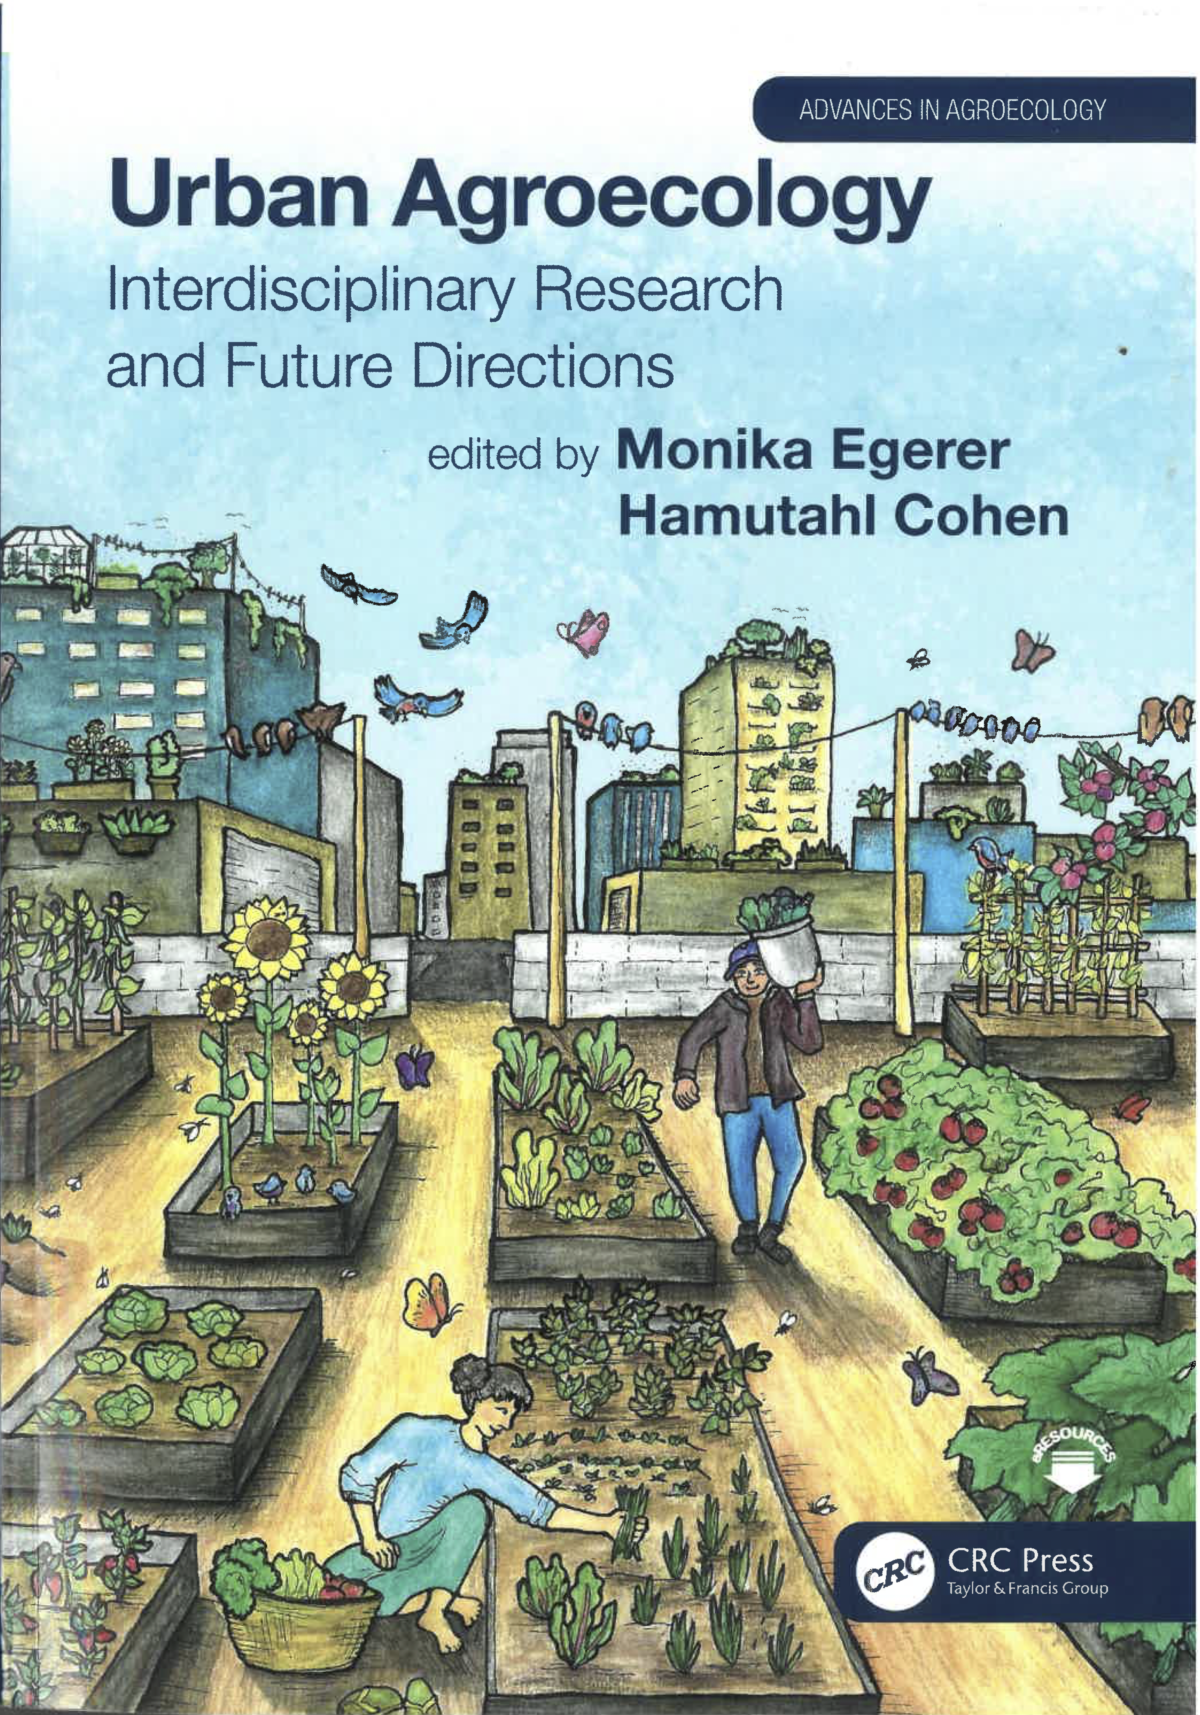 NEWS: ALC contributes chapter to Urban Agroecology book